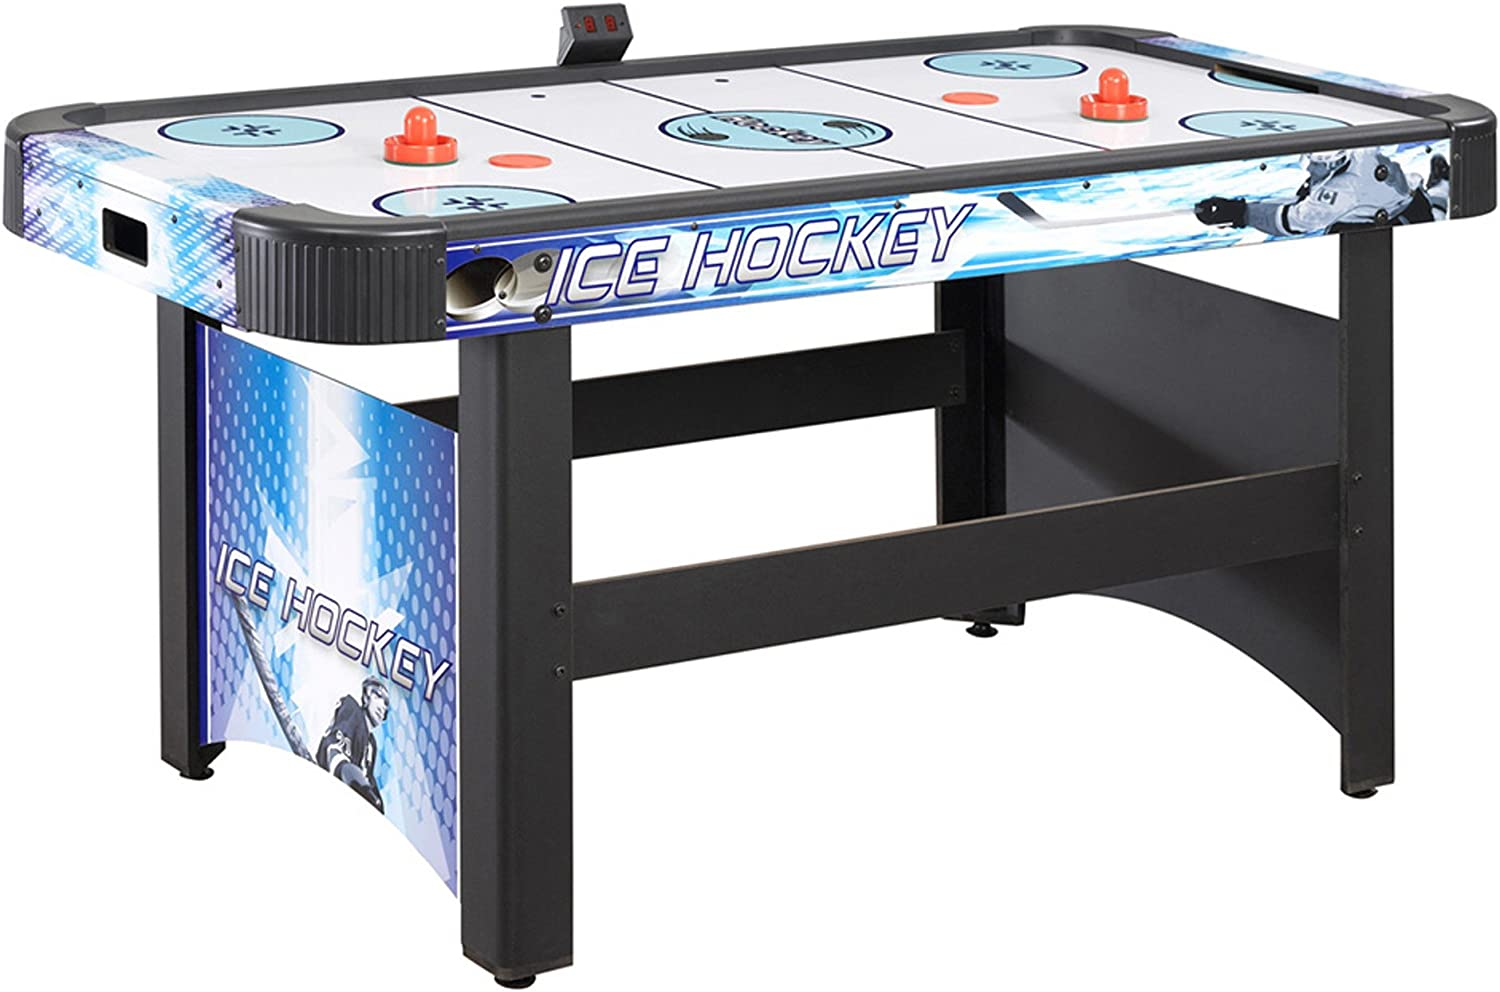 Pucks and Strikers Face-Off 5 ft Air Hockey Game Table with Electronic Scoring